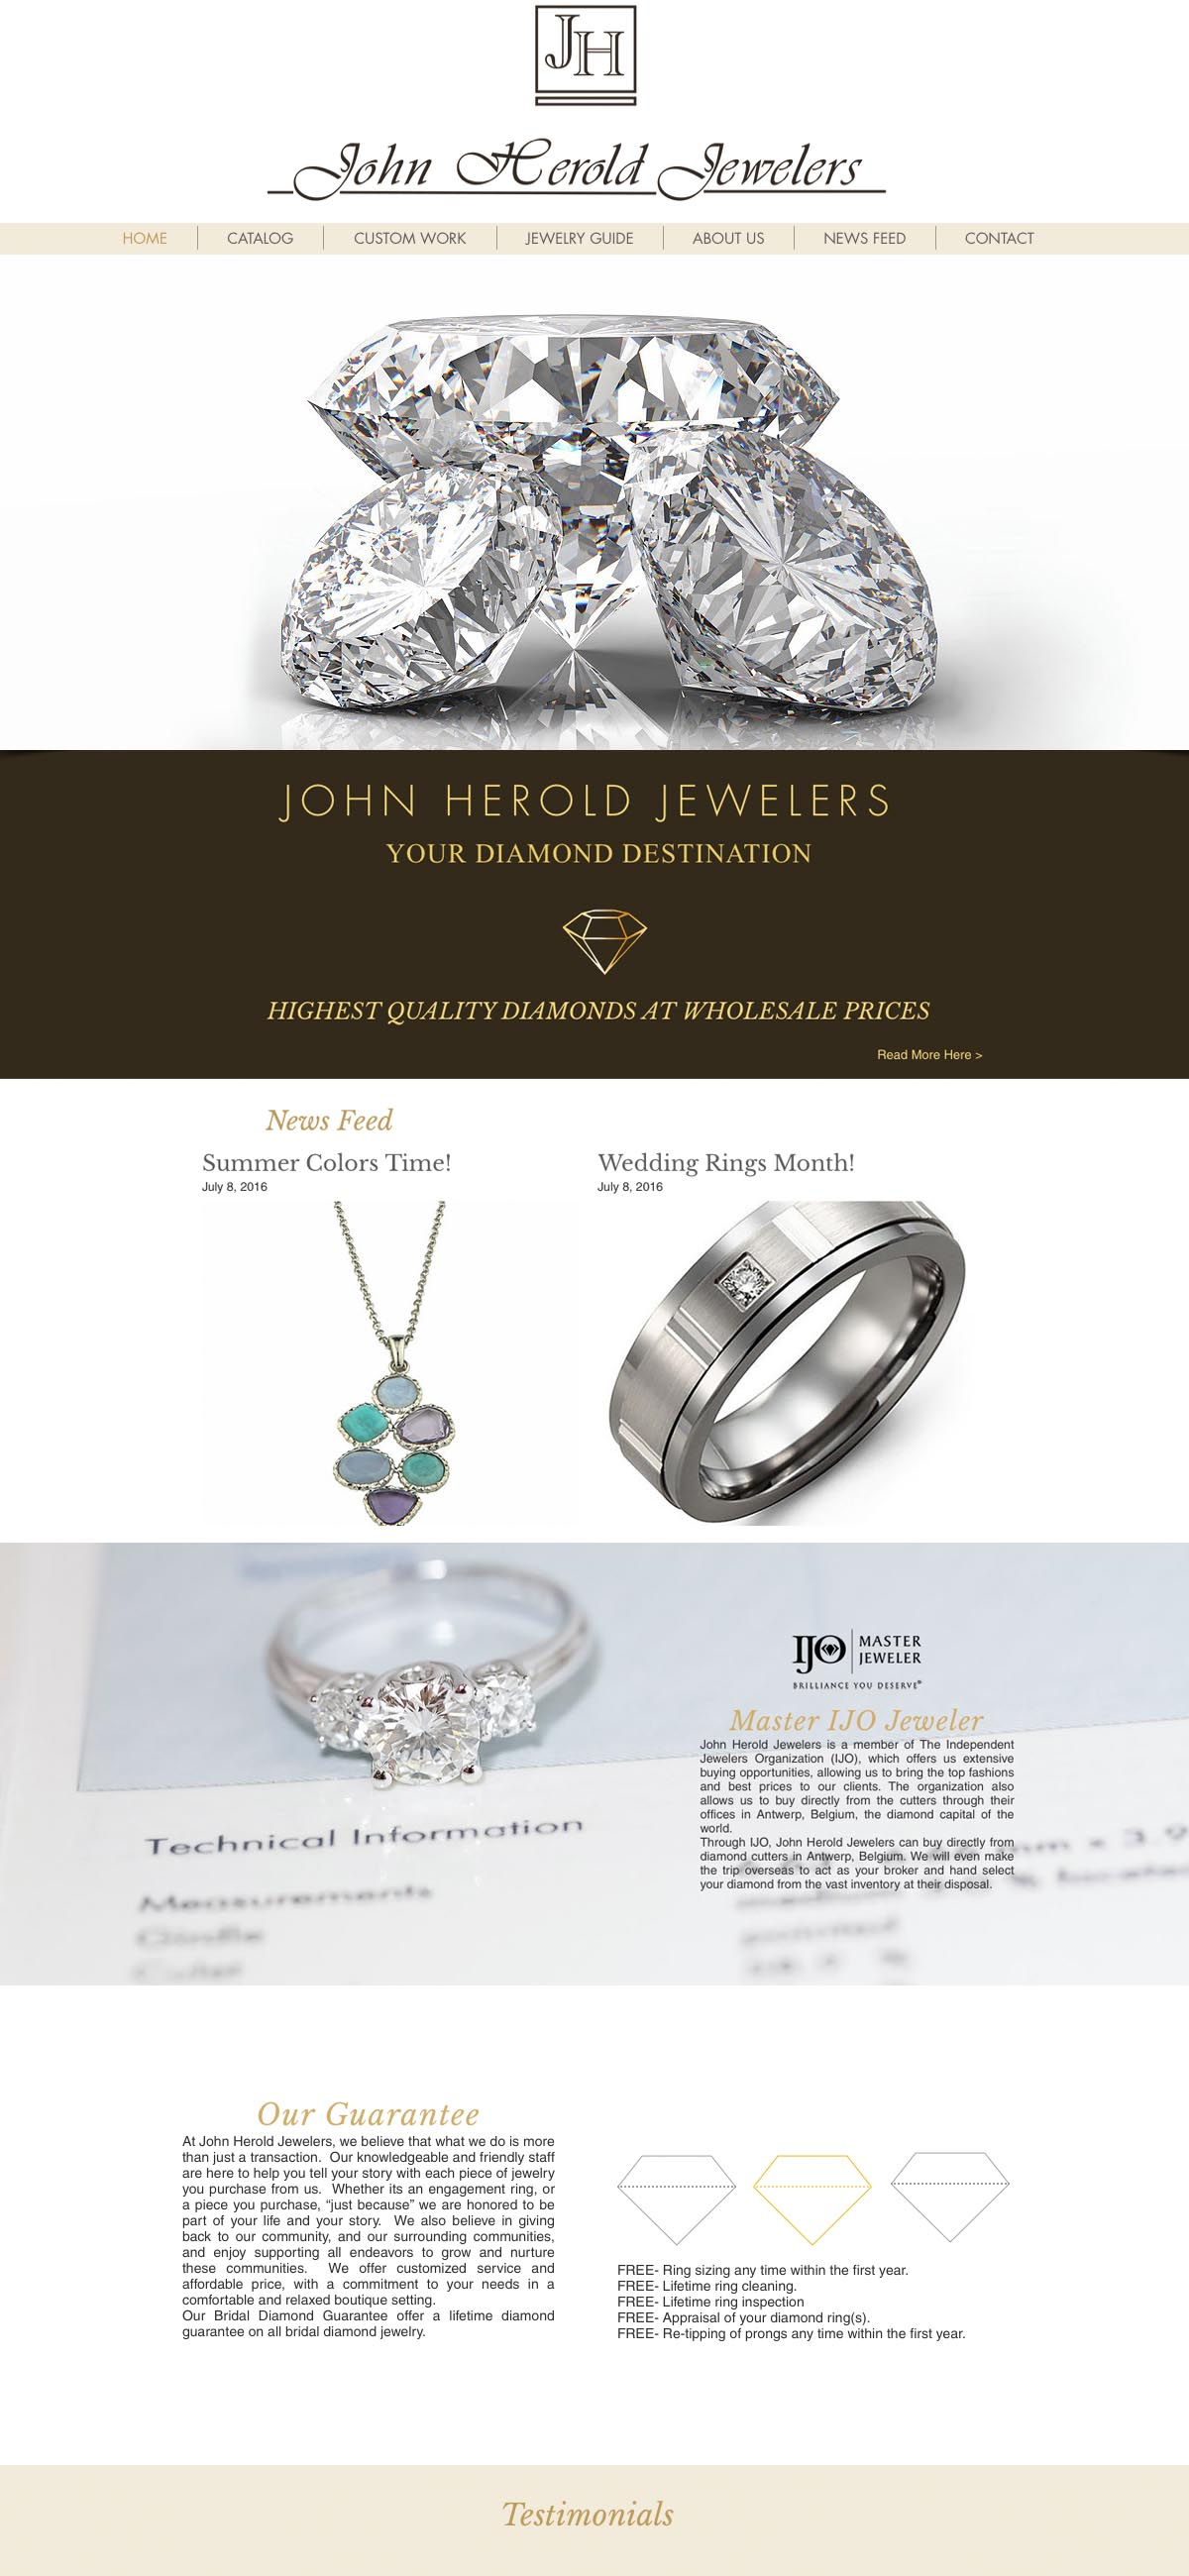 John Herold Jewelers Website